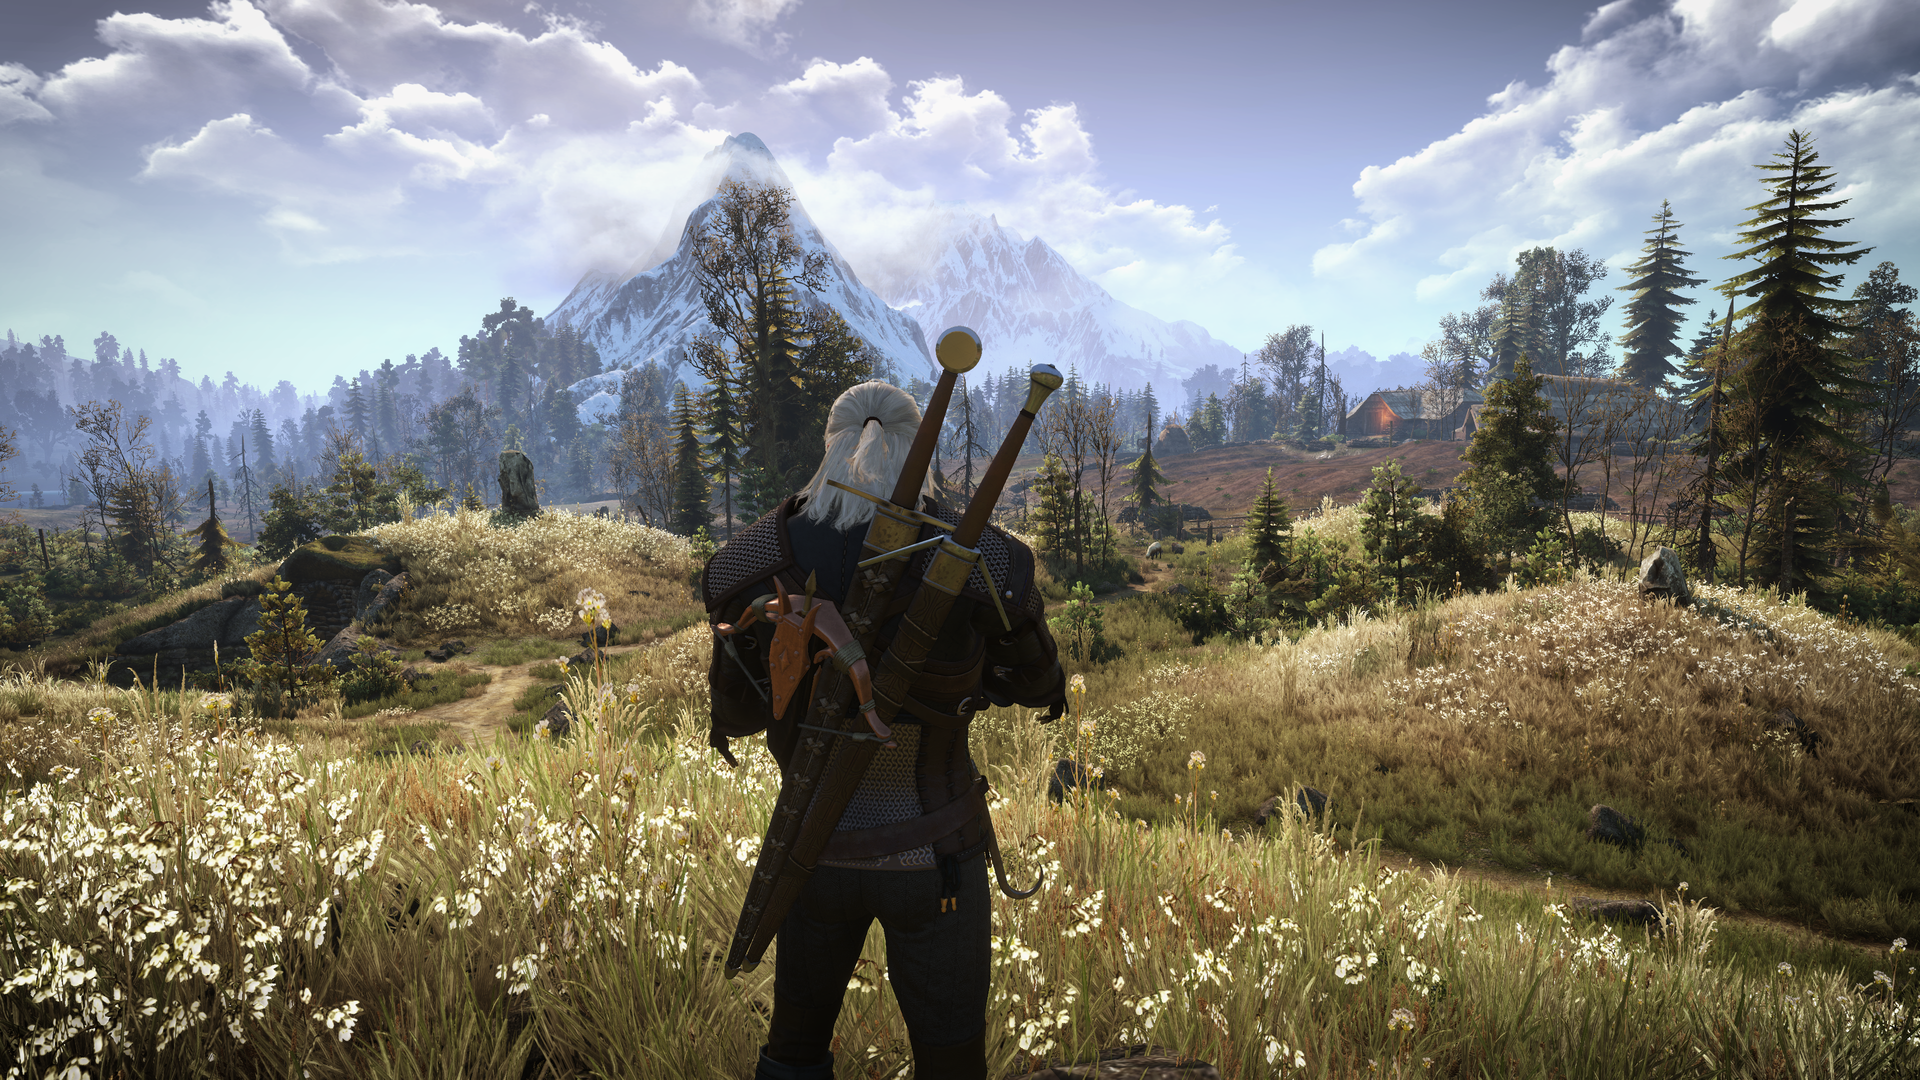 The Witcher 3 can now be played with the UI/HUD elements